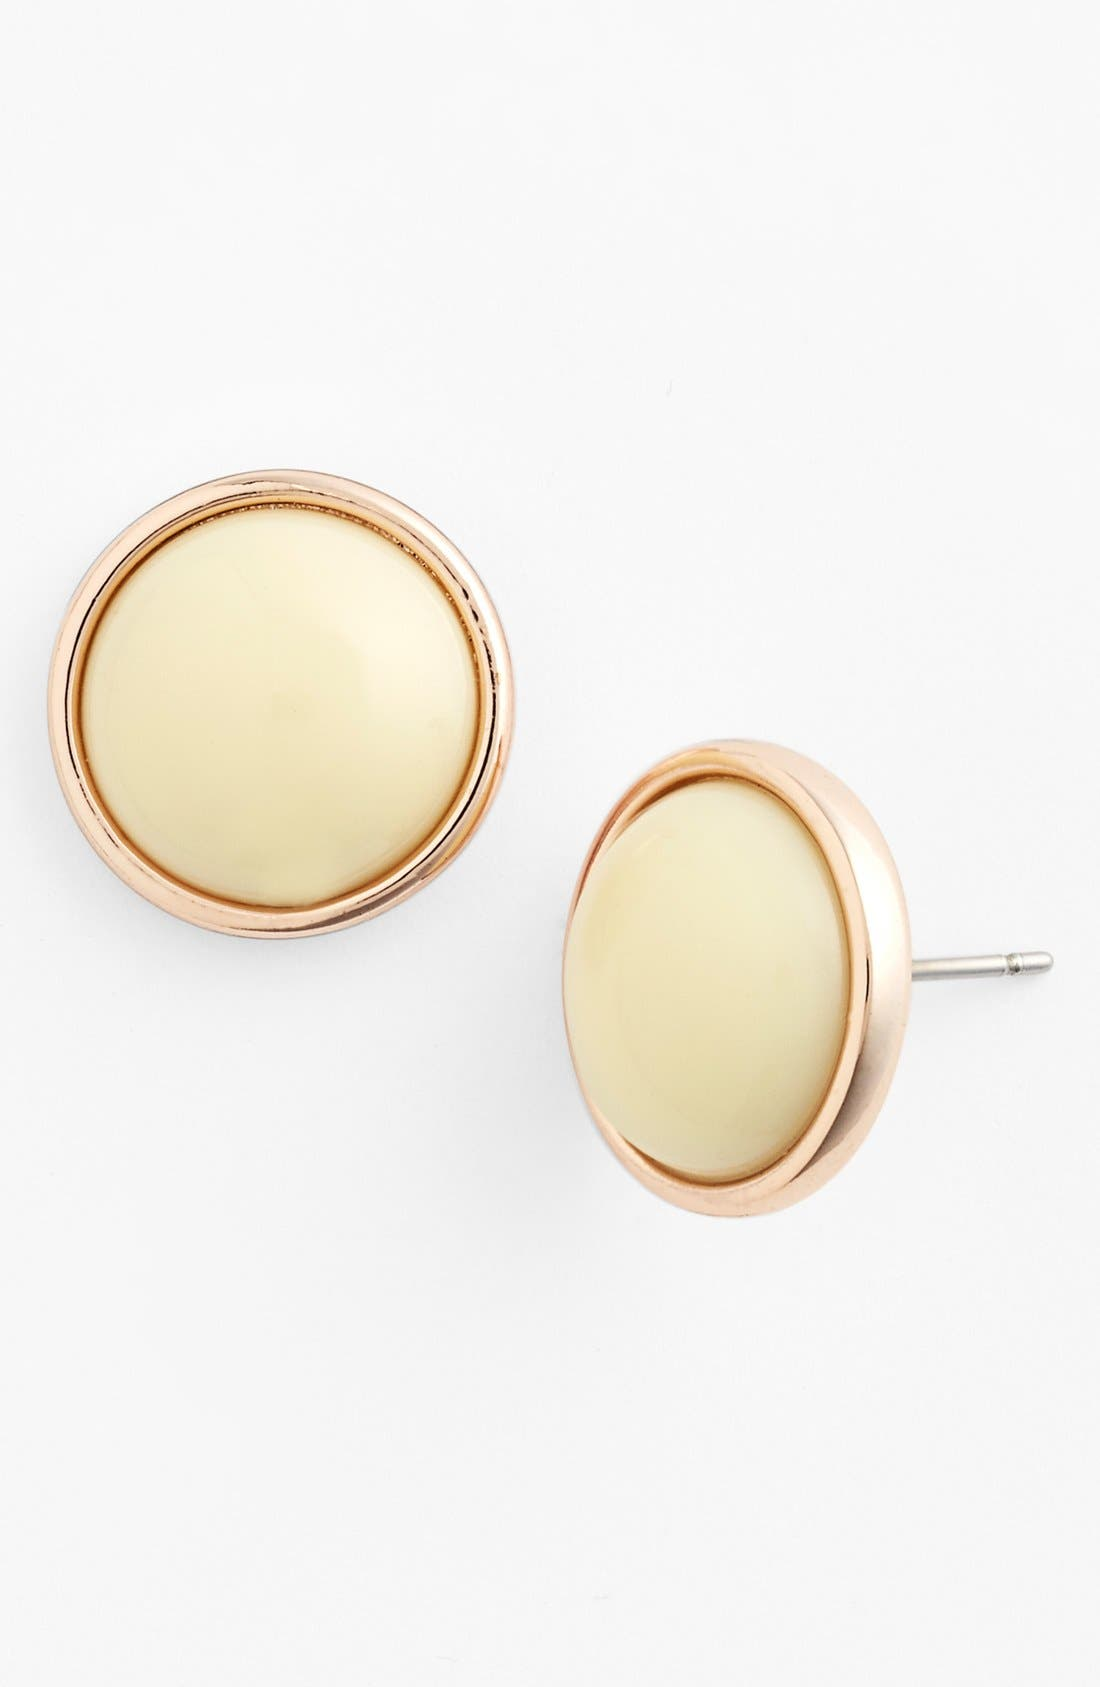 Main Image - MARC BY MARC JACOBS 'Geometric' Stud Earrings